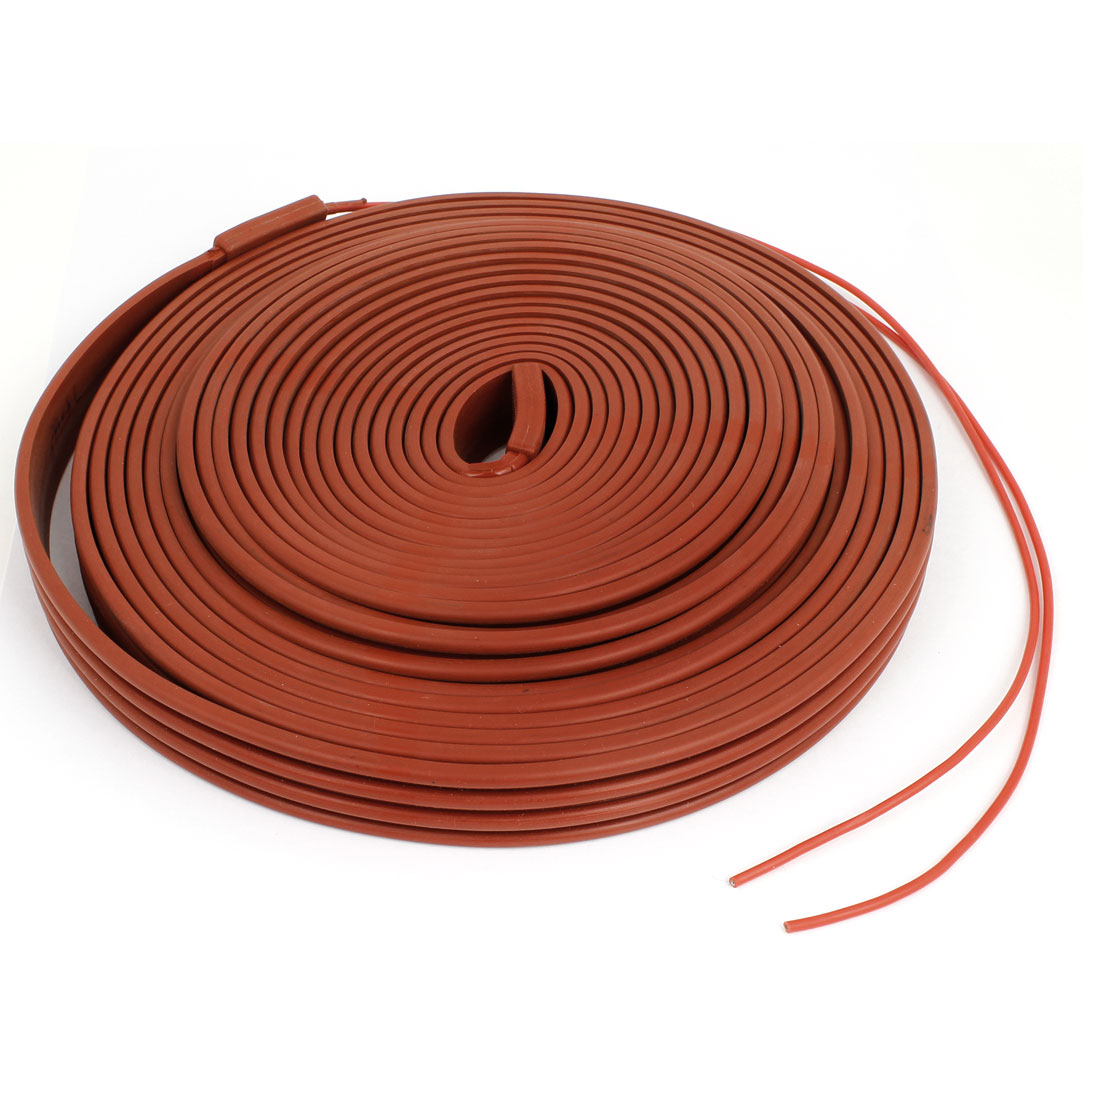 110V Red Freezing Protection Waterproof Heater Strip Pipe Heating Cable 10M x 25mm